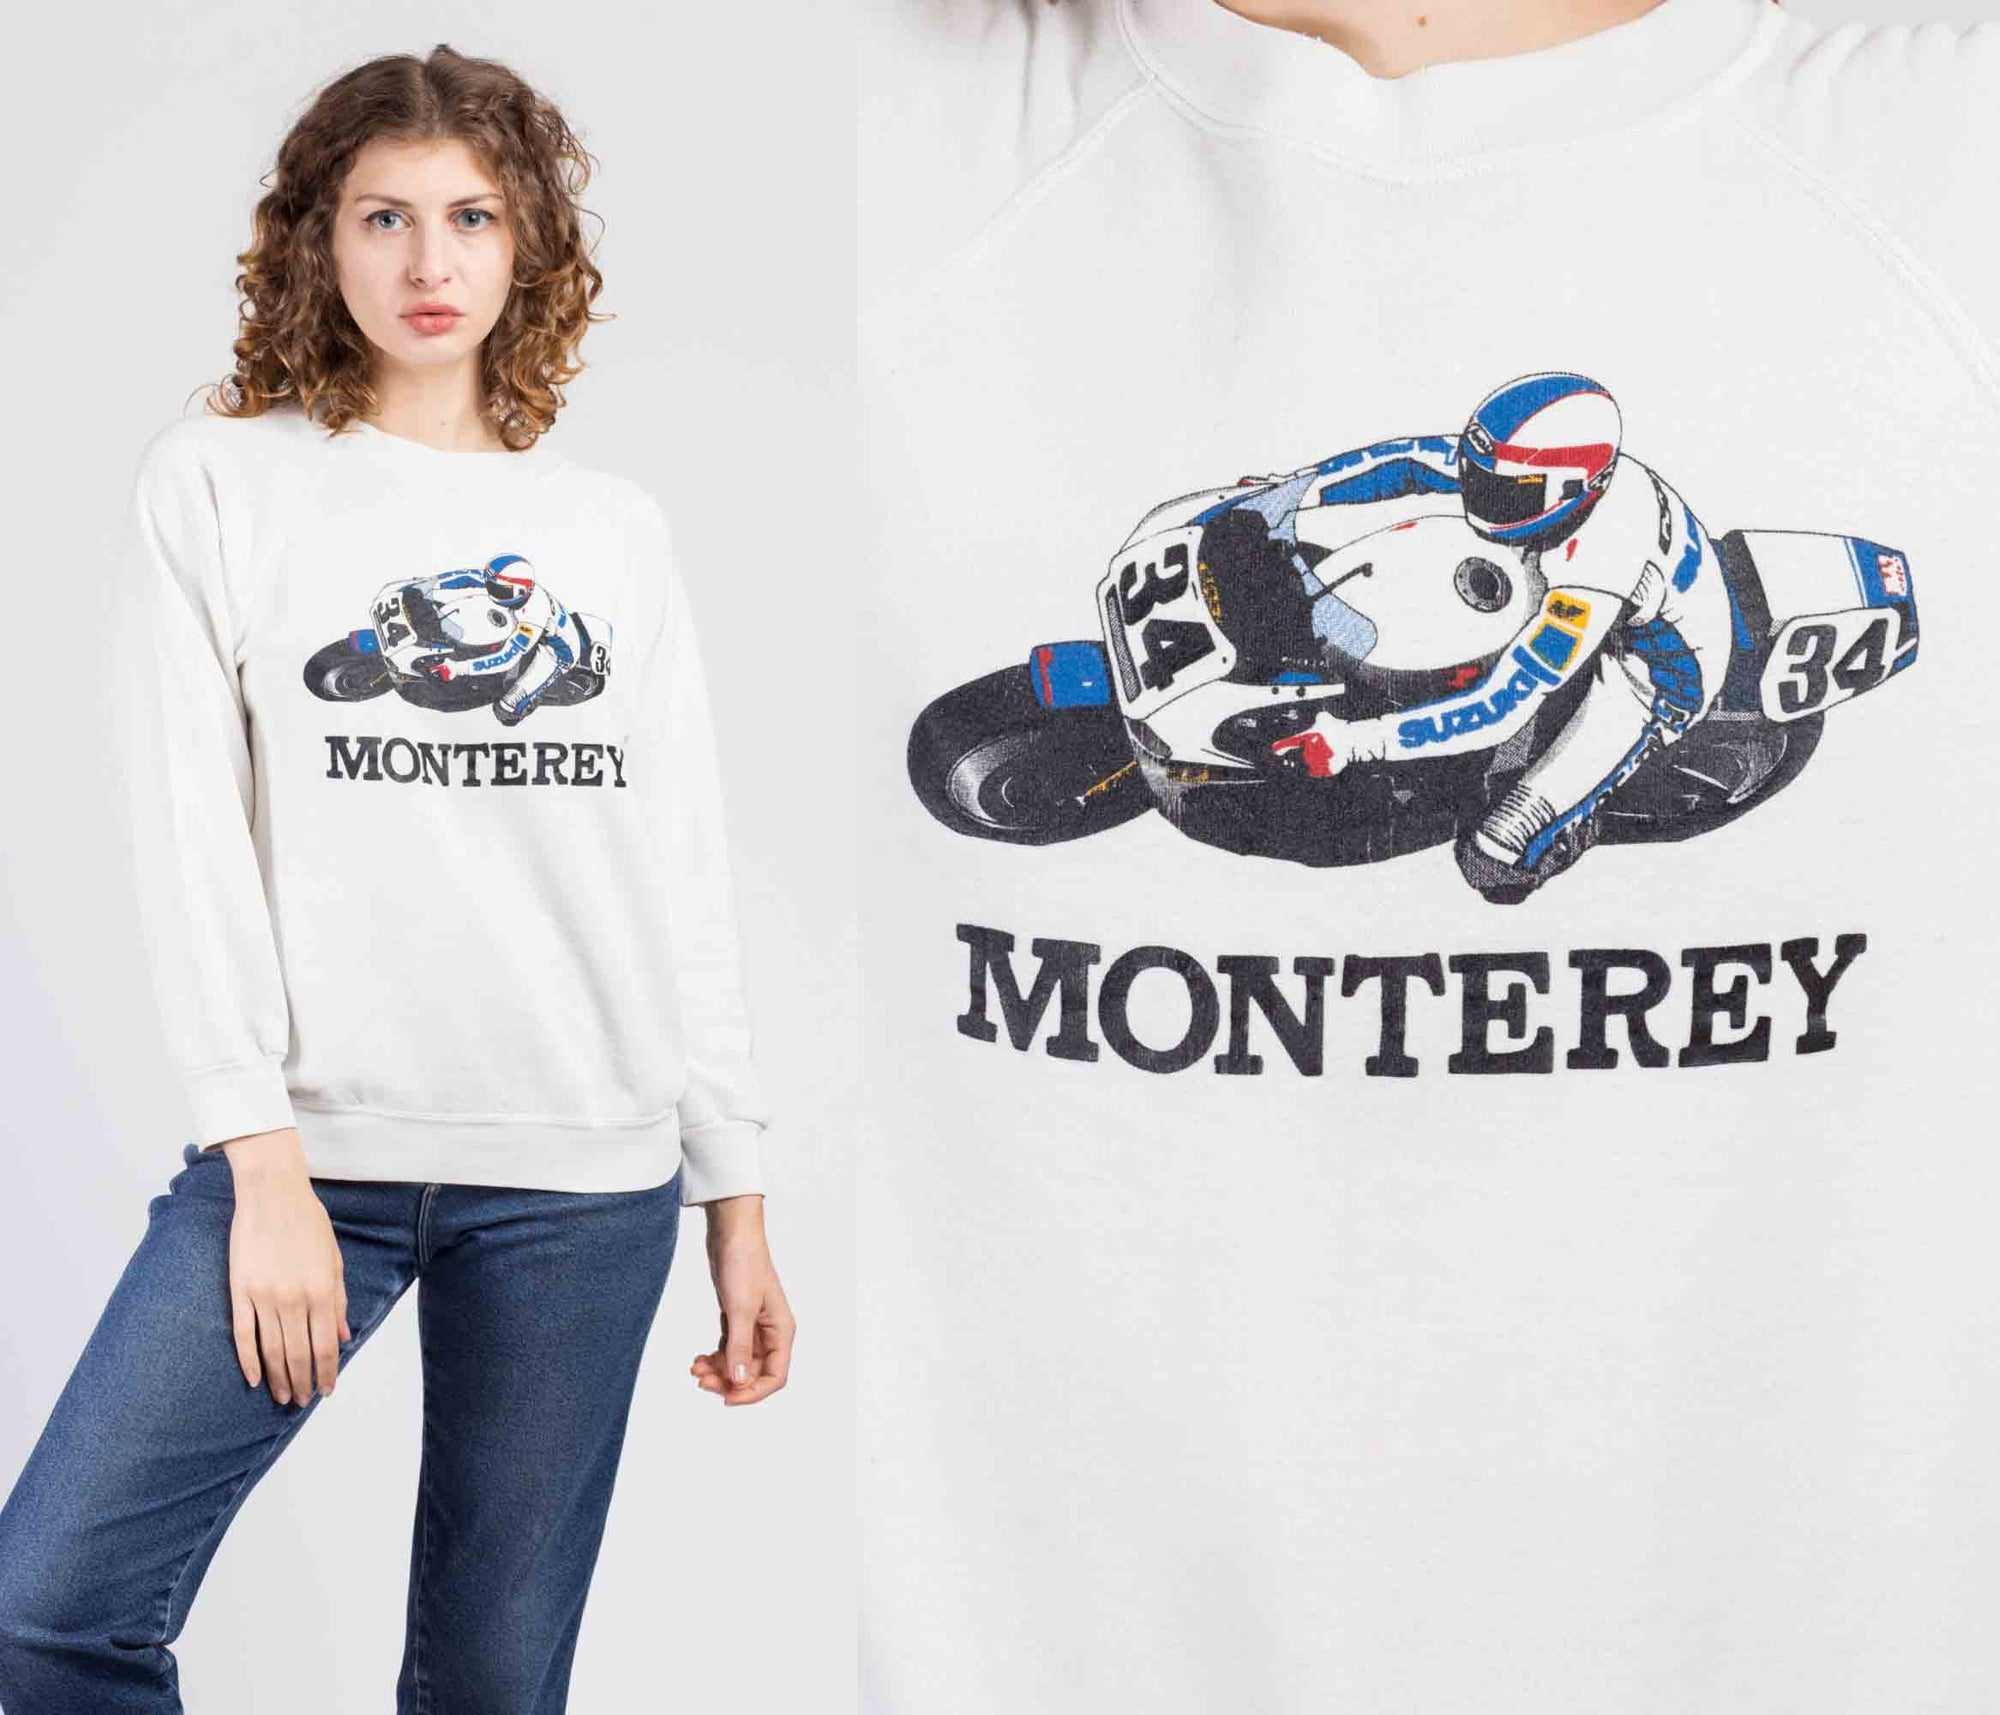 80s Monterey Motorcycle Racing Graphic Sweatshirt - Large